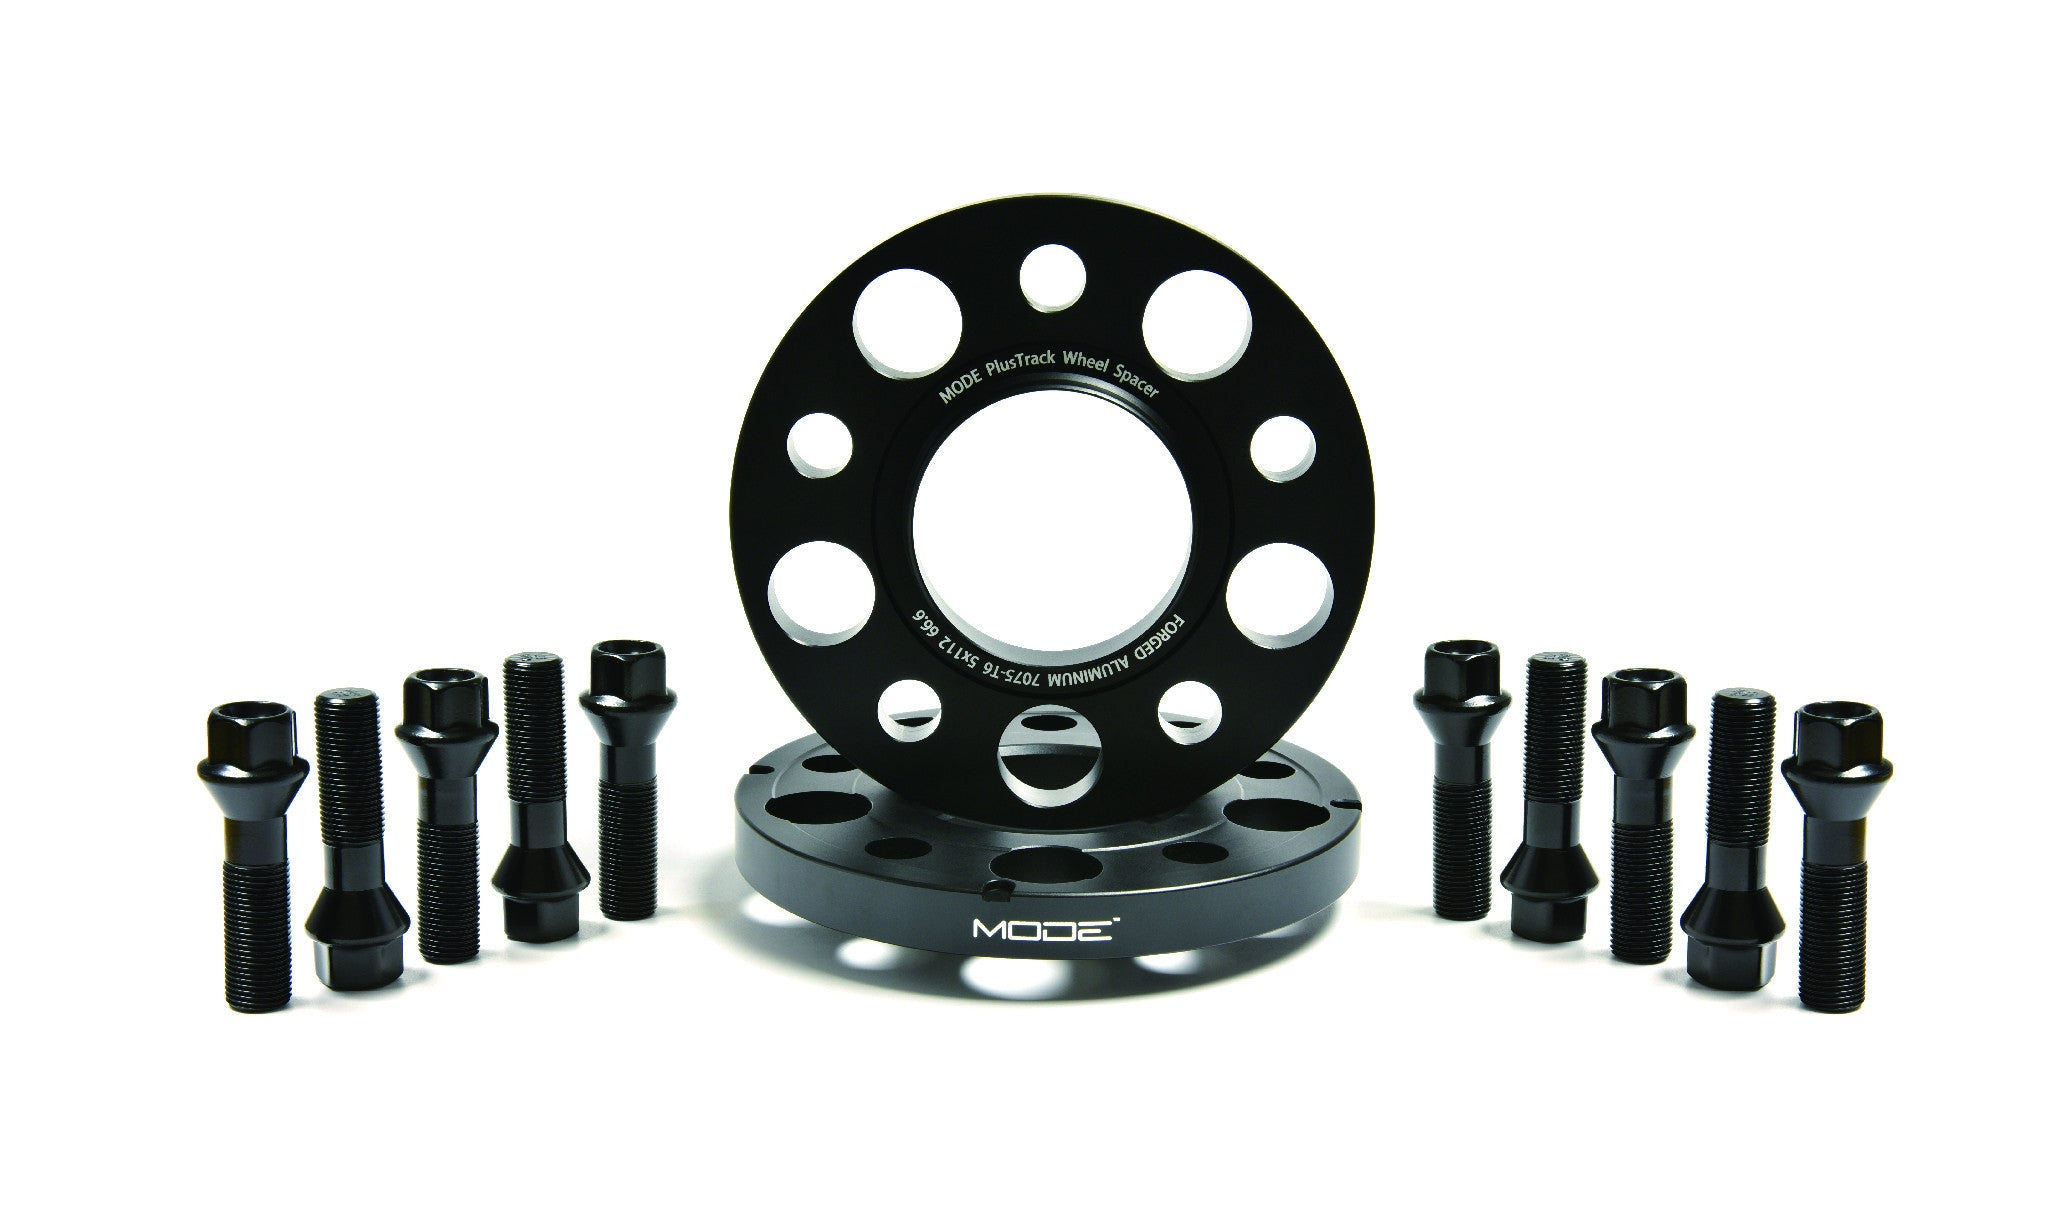 MODE PlusTrack Wheel Spacer Kit 15mm Bentley